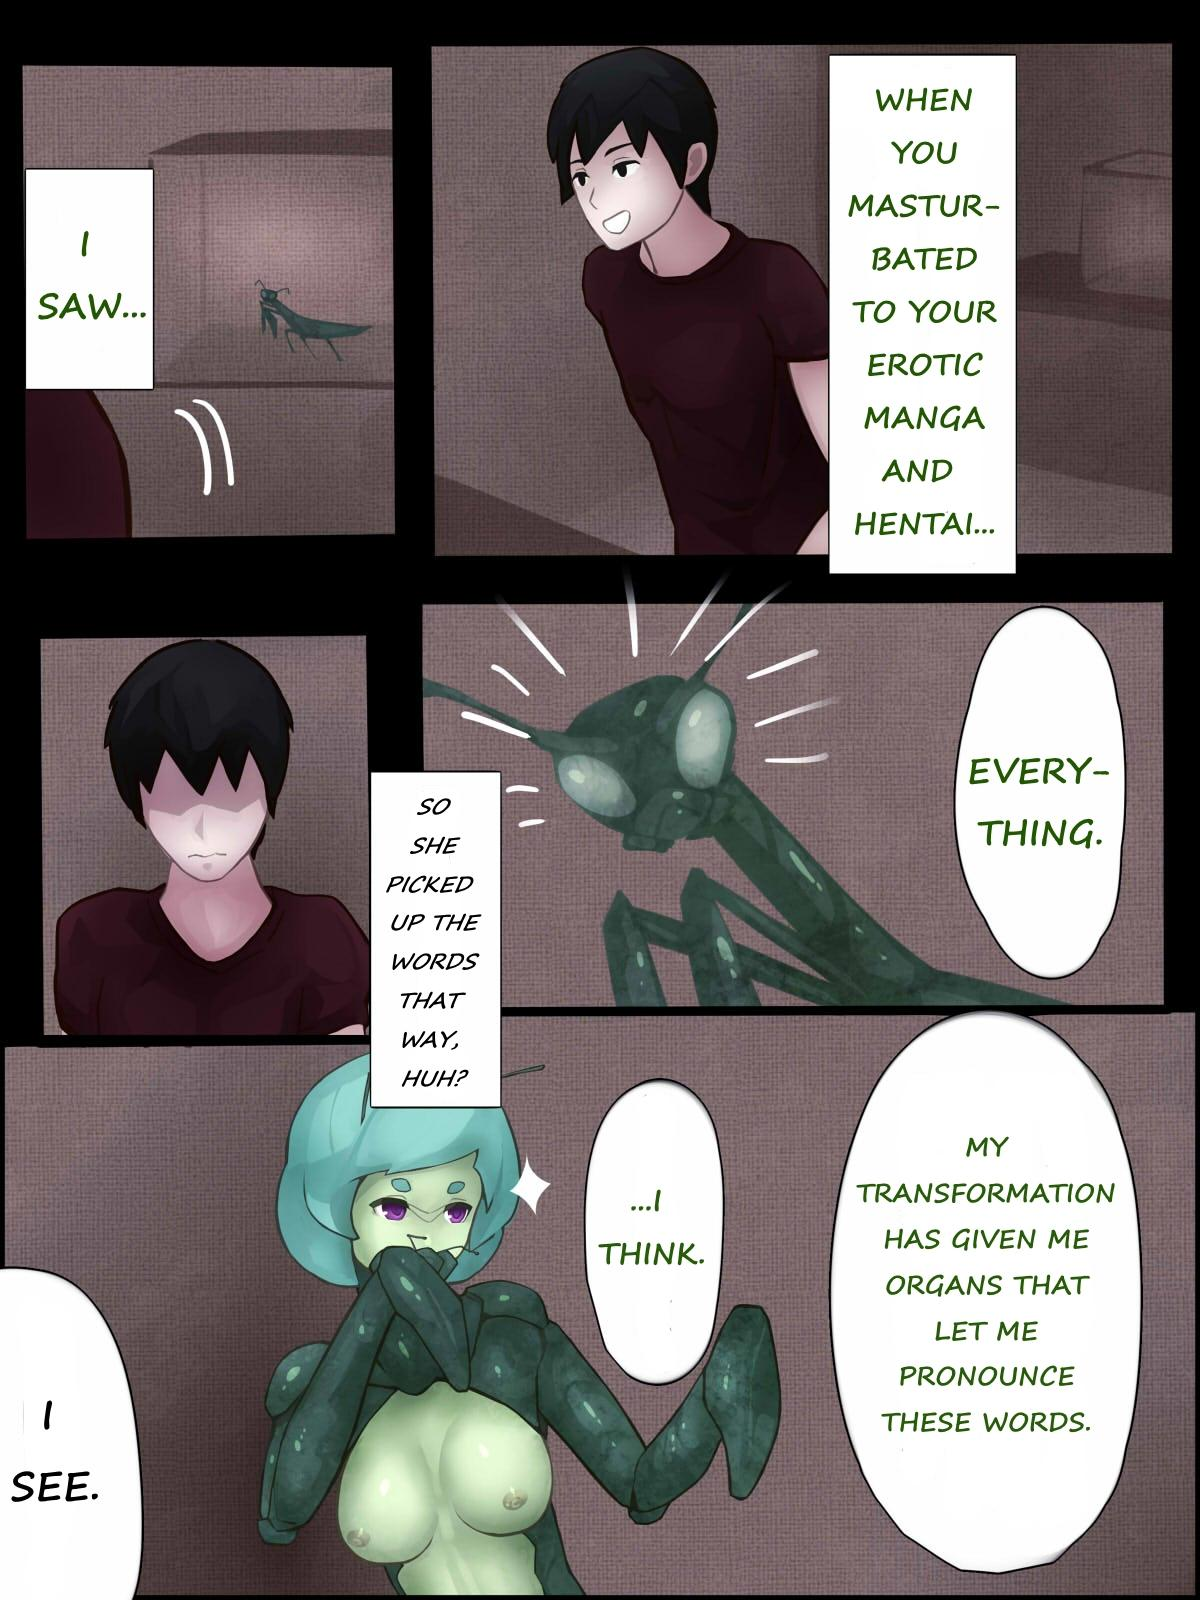 Sex with Mantis Girl 18